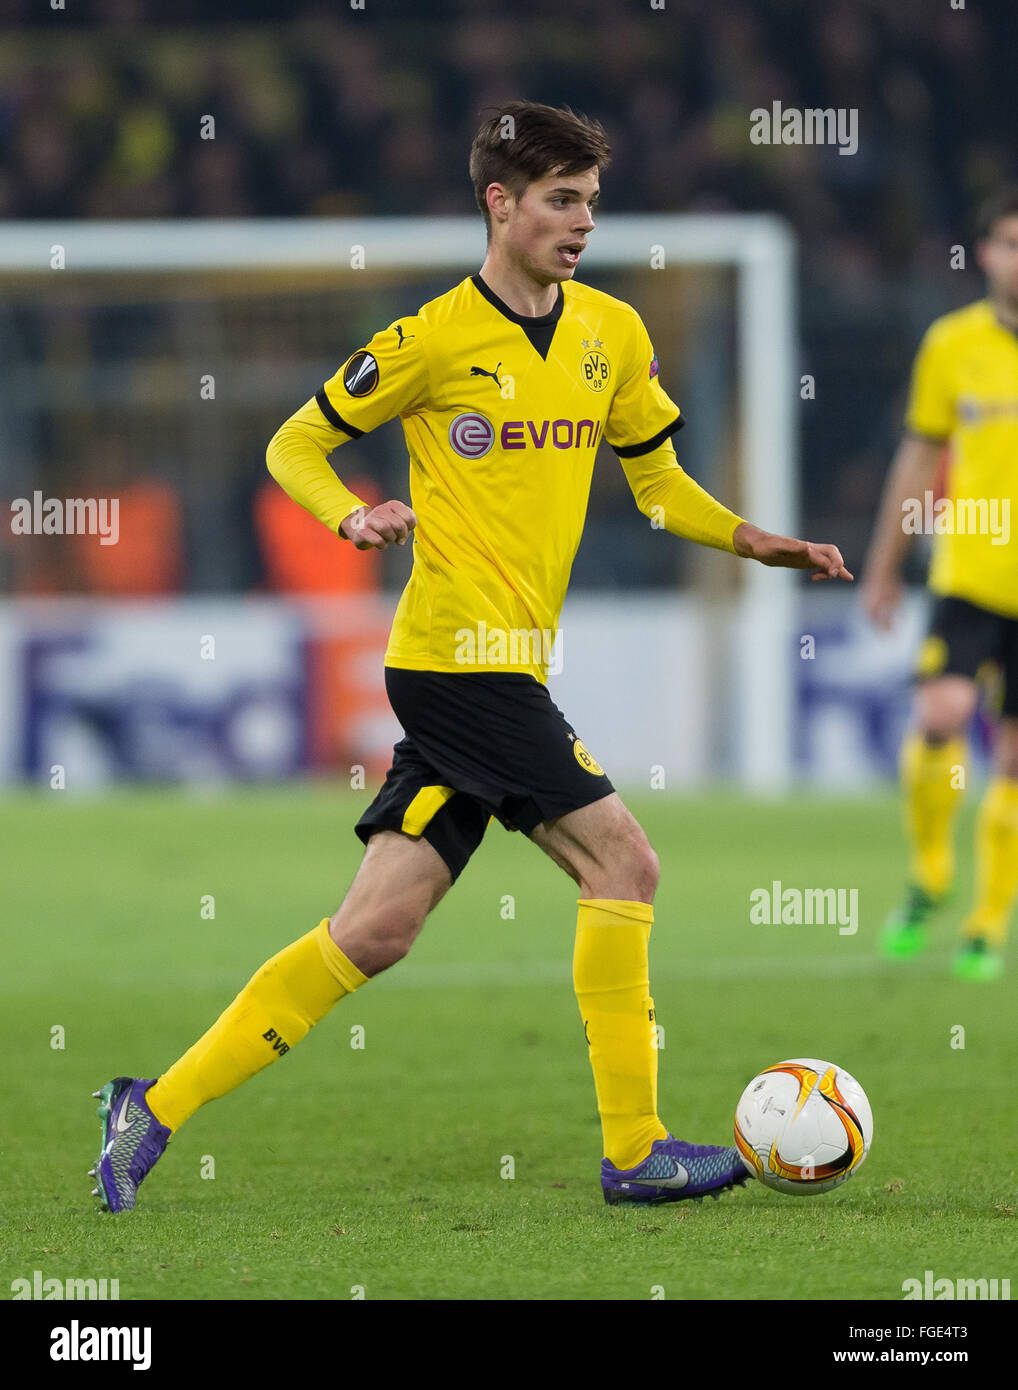 Dortmund Germany 18th Feb 2016 Dortmund s Julian Weigl in